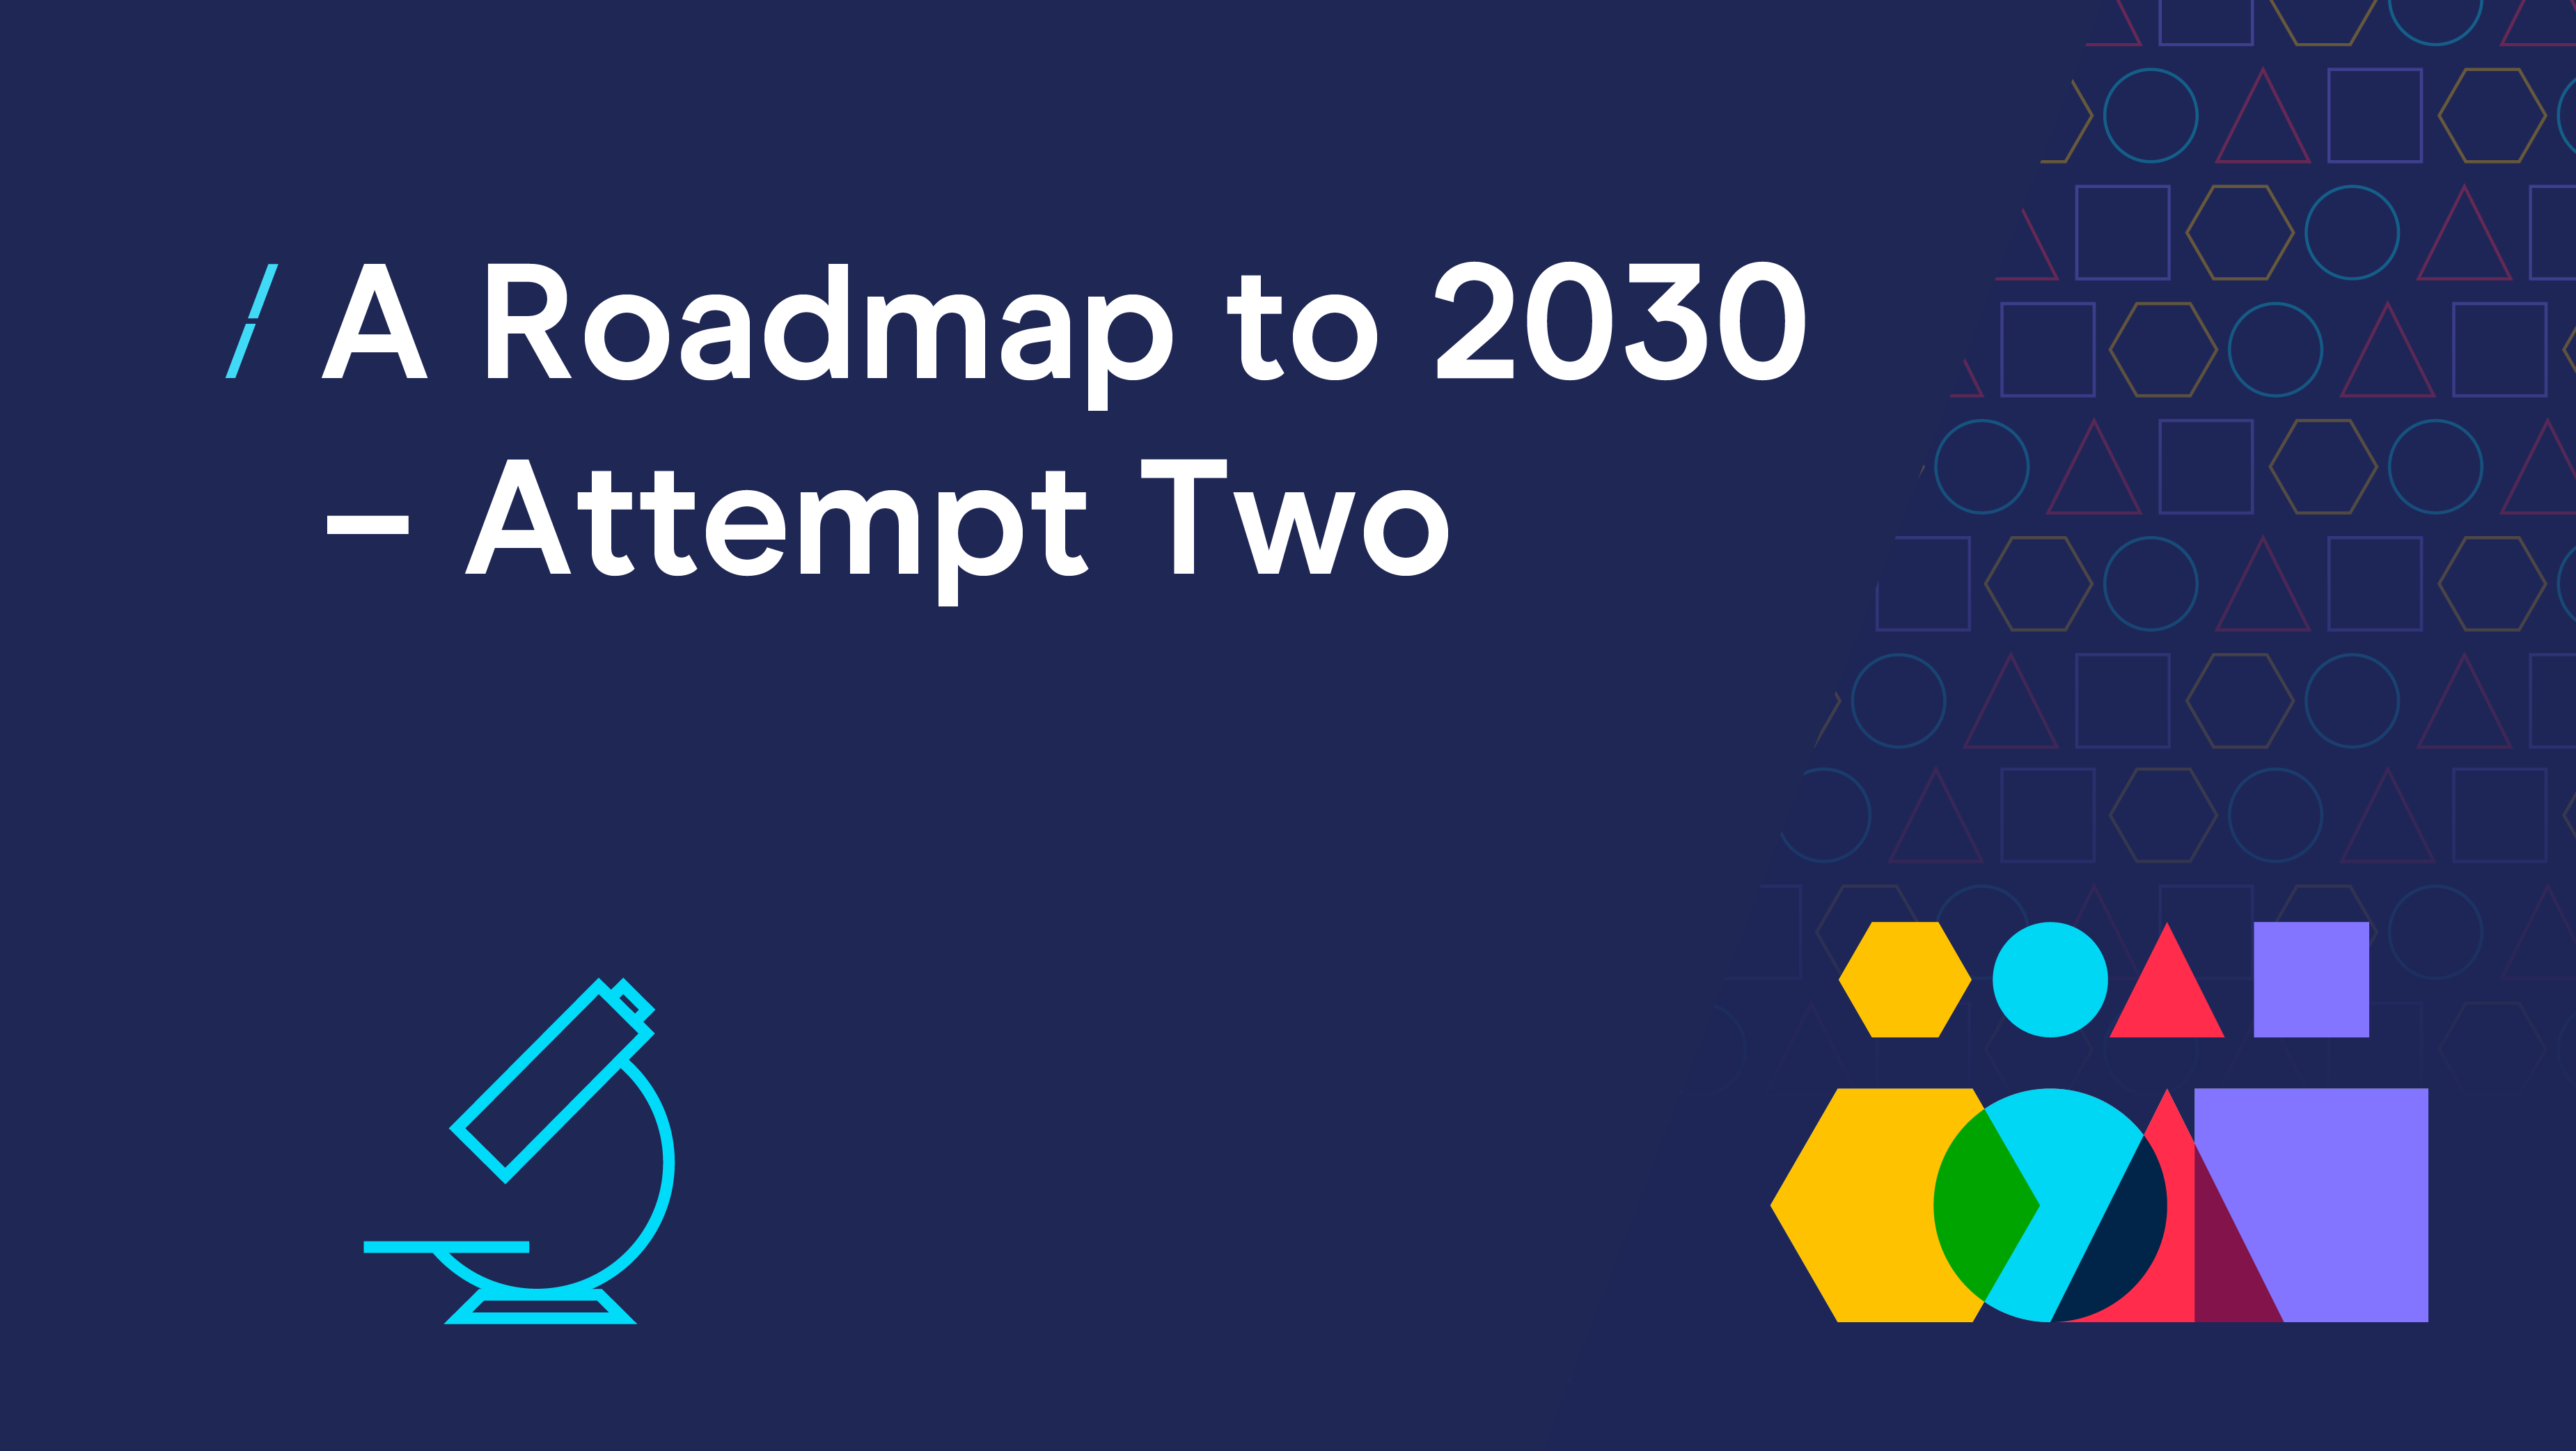 A Roadmap to 2030 - Attempt Two-01.png